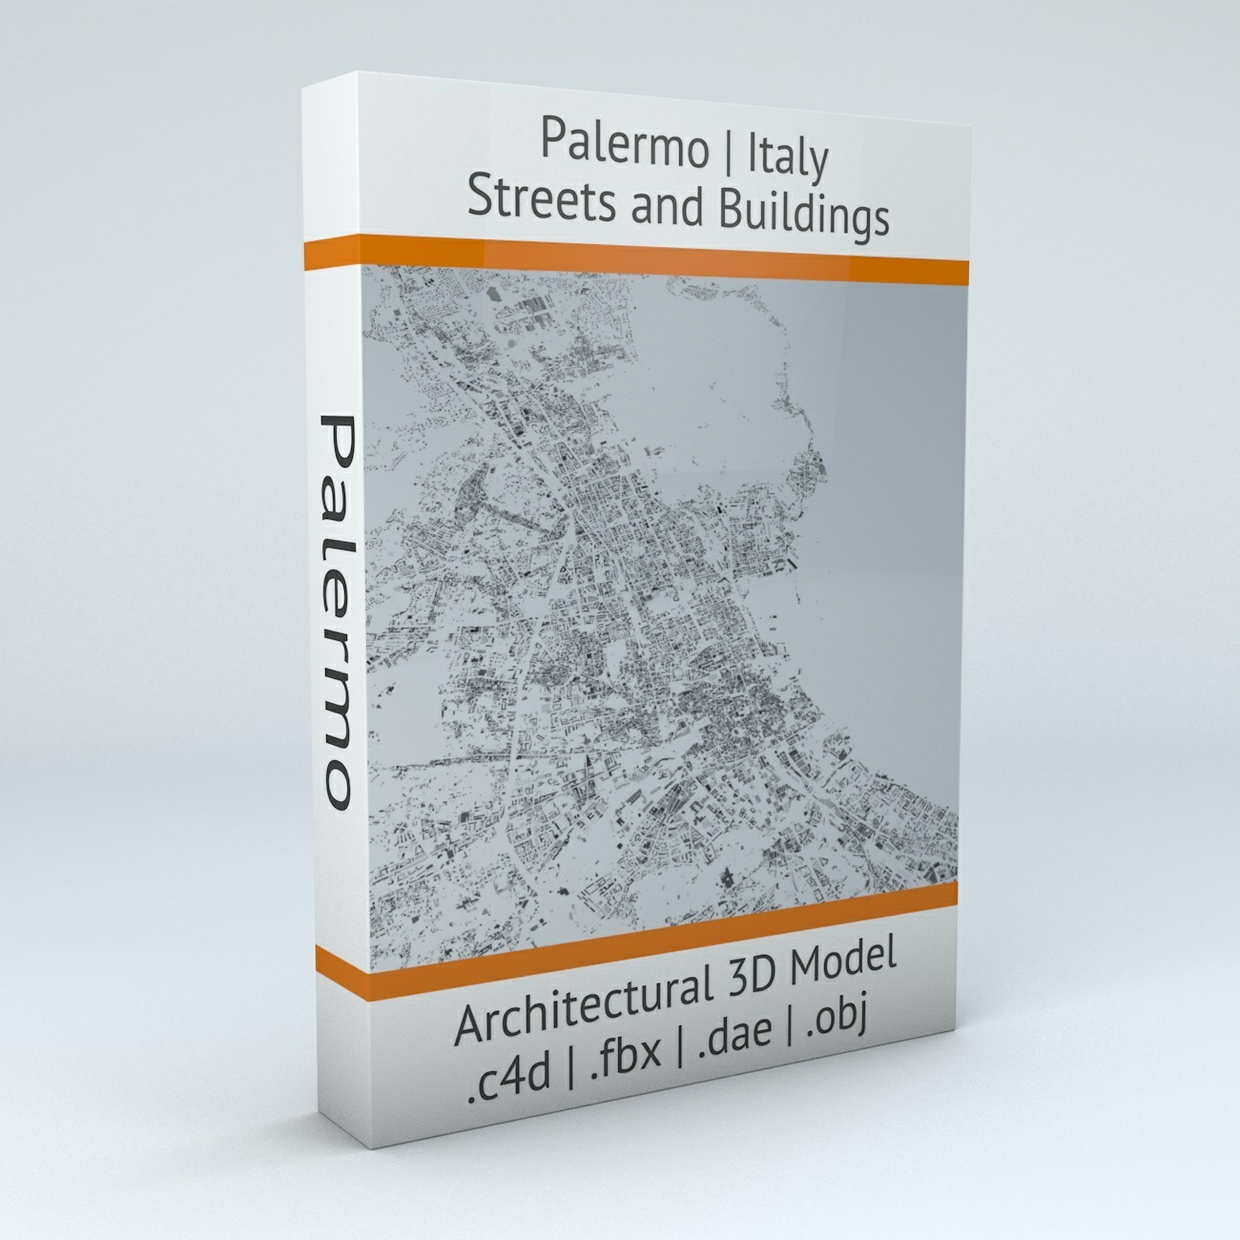 Palermo Streets and Buildings Architectural 3D Model